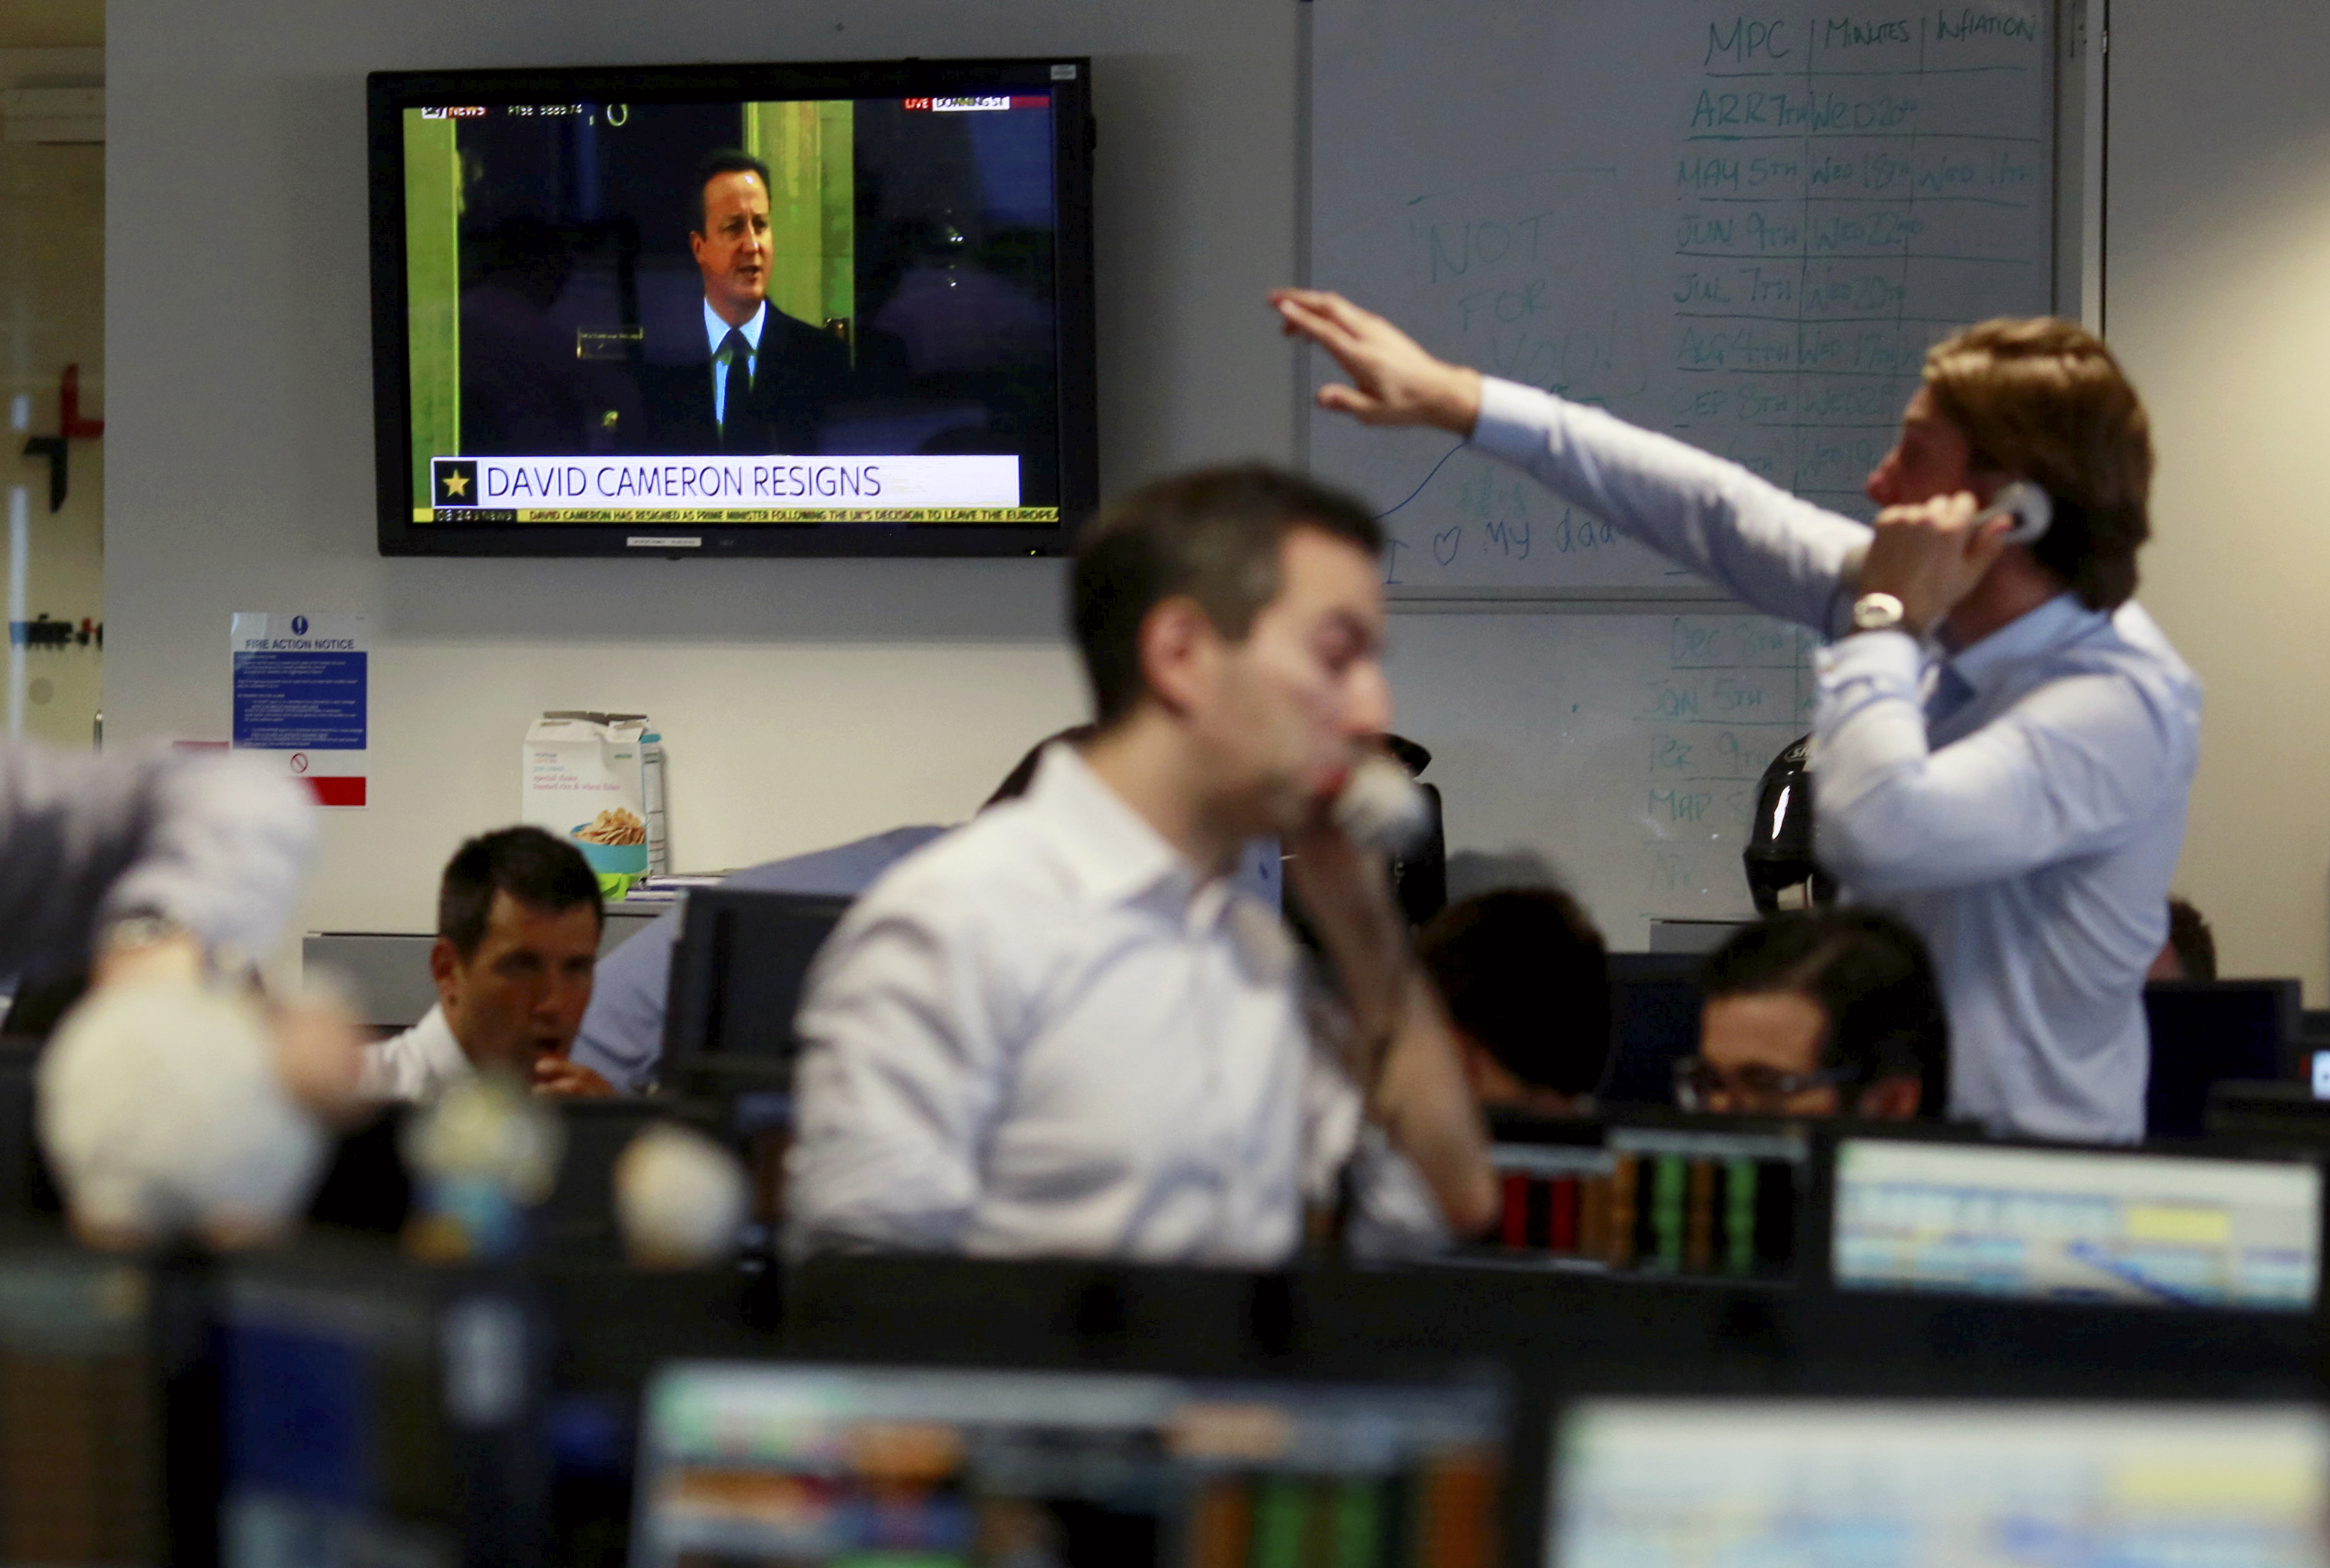 A TV shows the resignation of Britain's Prime Minister David Cameron as traders from BGC, a global brokerage company in London's Canary Wharf financial centre react after European stock markets opened June 24, 2016 after Britain voted to leave the European Union in the EU BREXIT referendum.